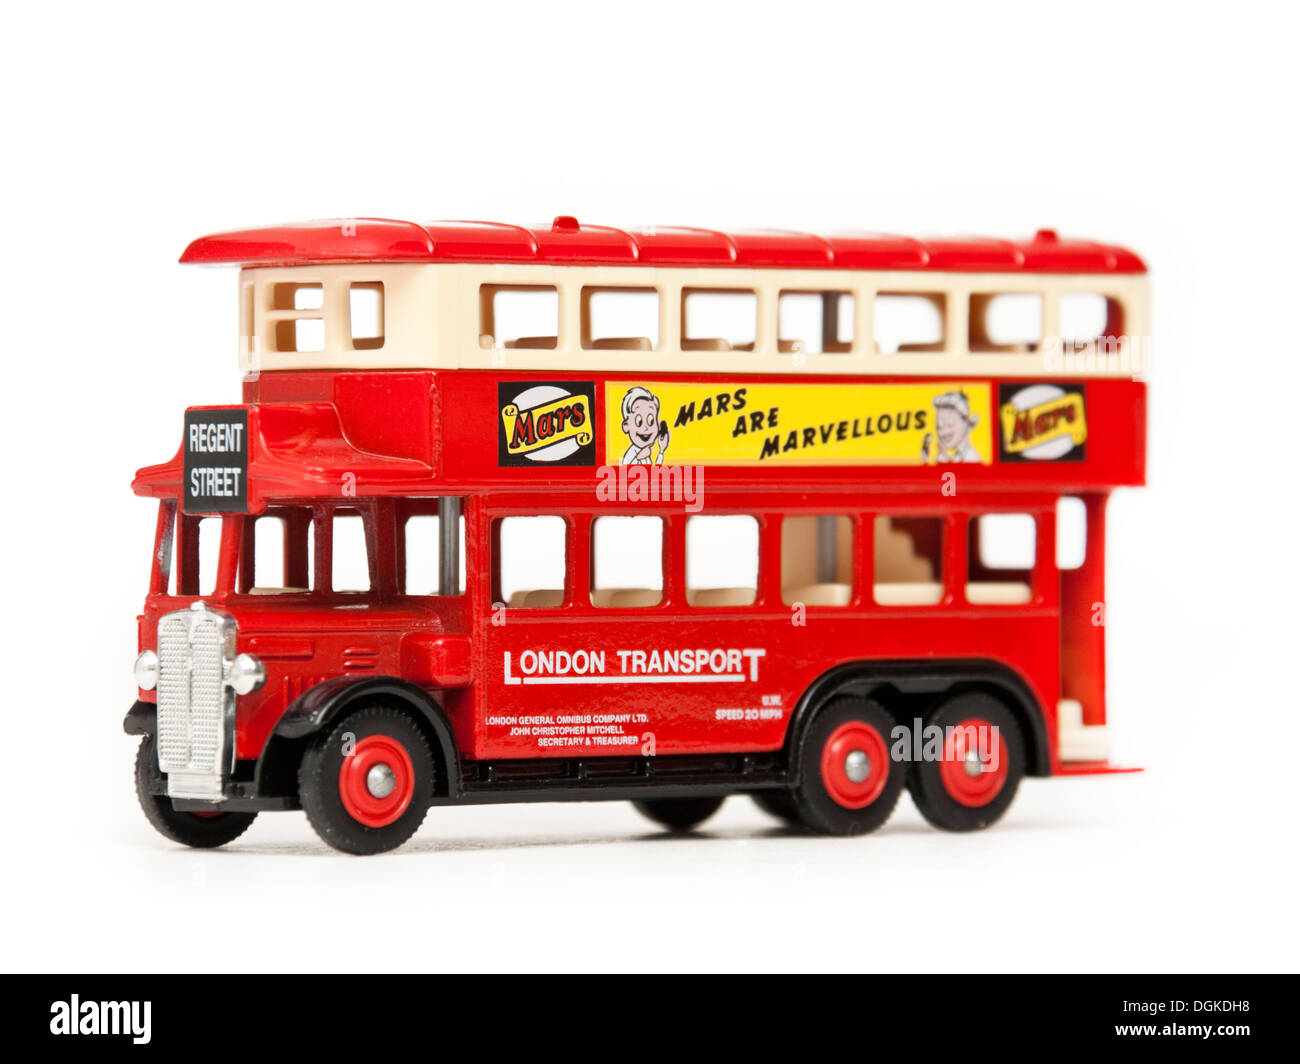 Matchbox diecast replica of London Transport double decker bus (Regent Street, with Mars advertising on the side) - Stock Image